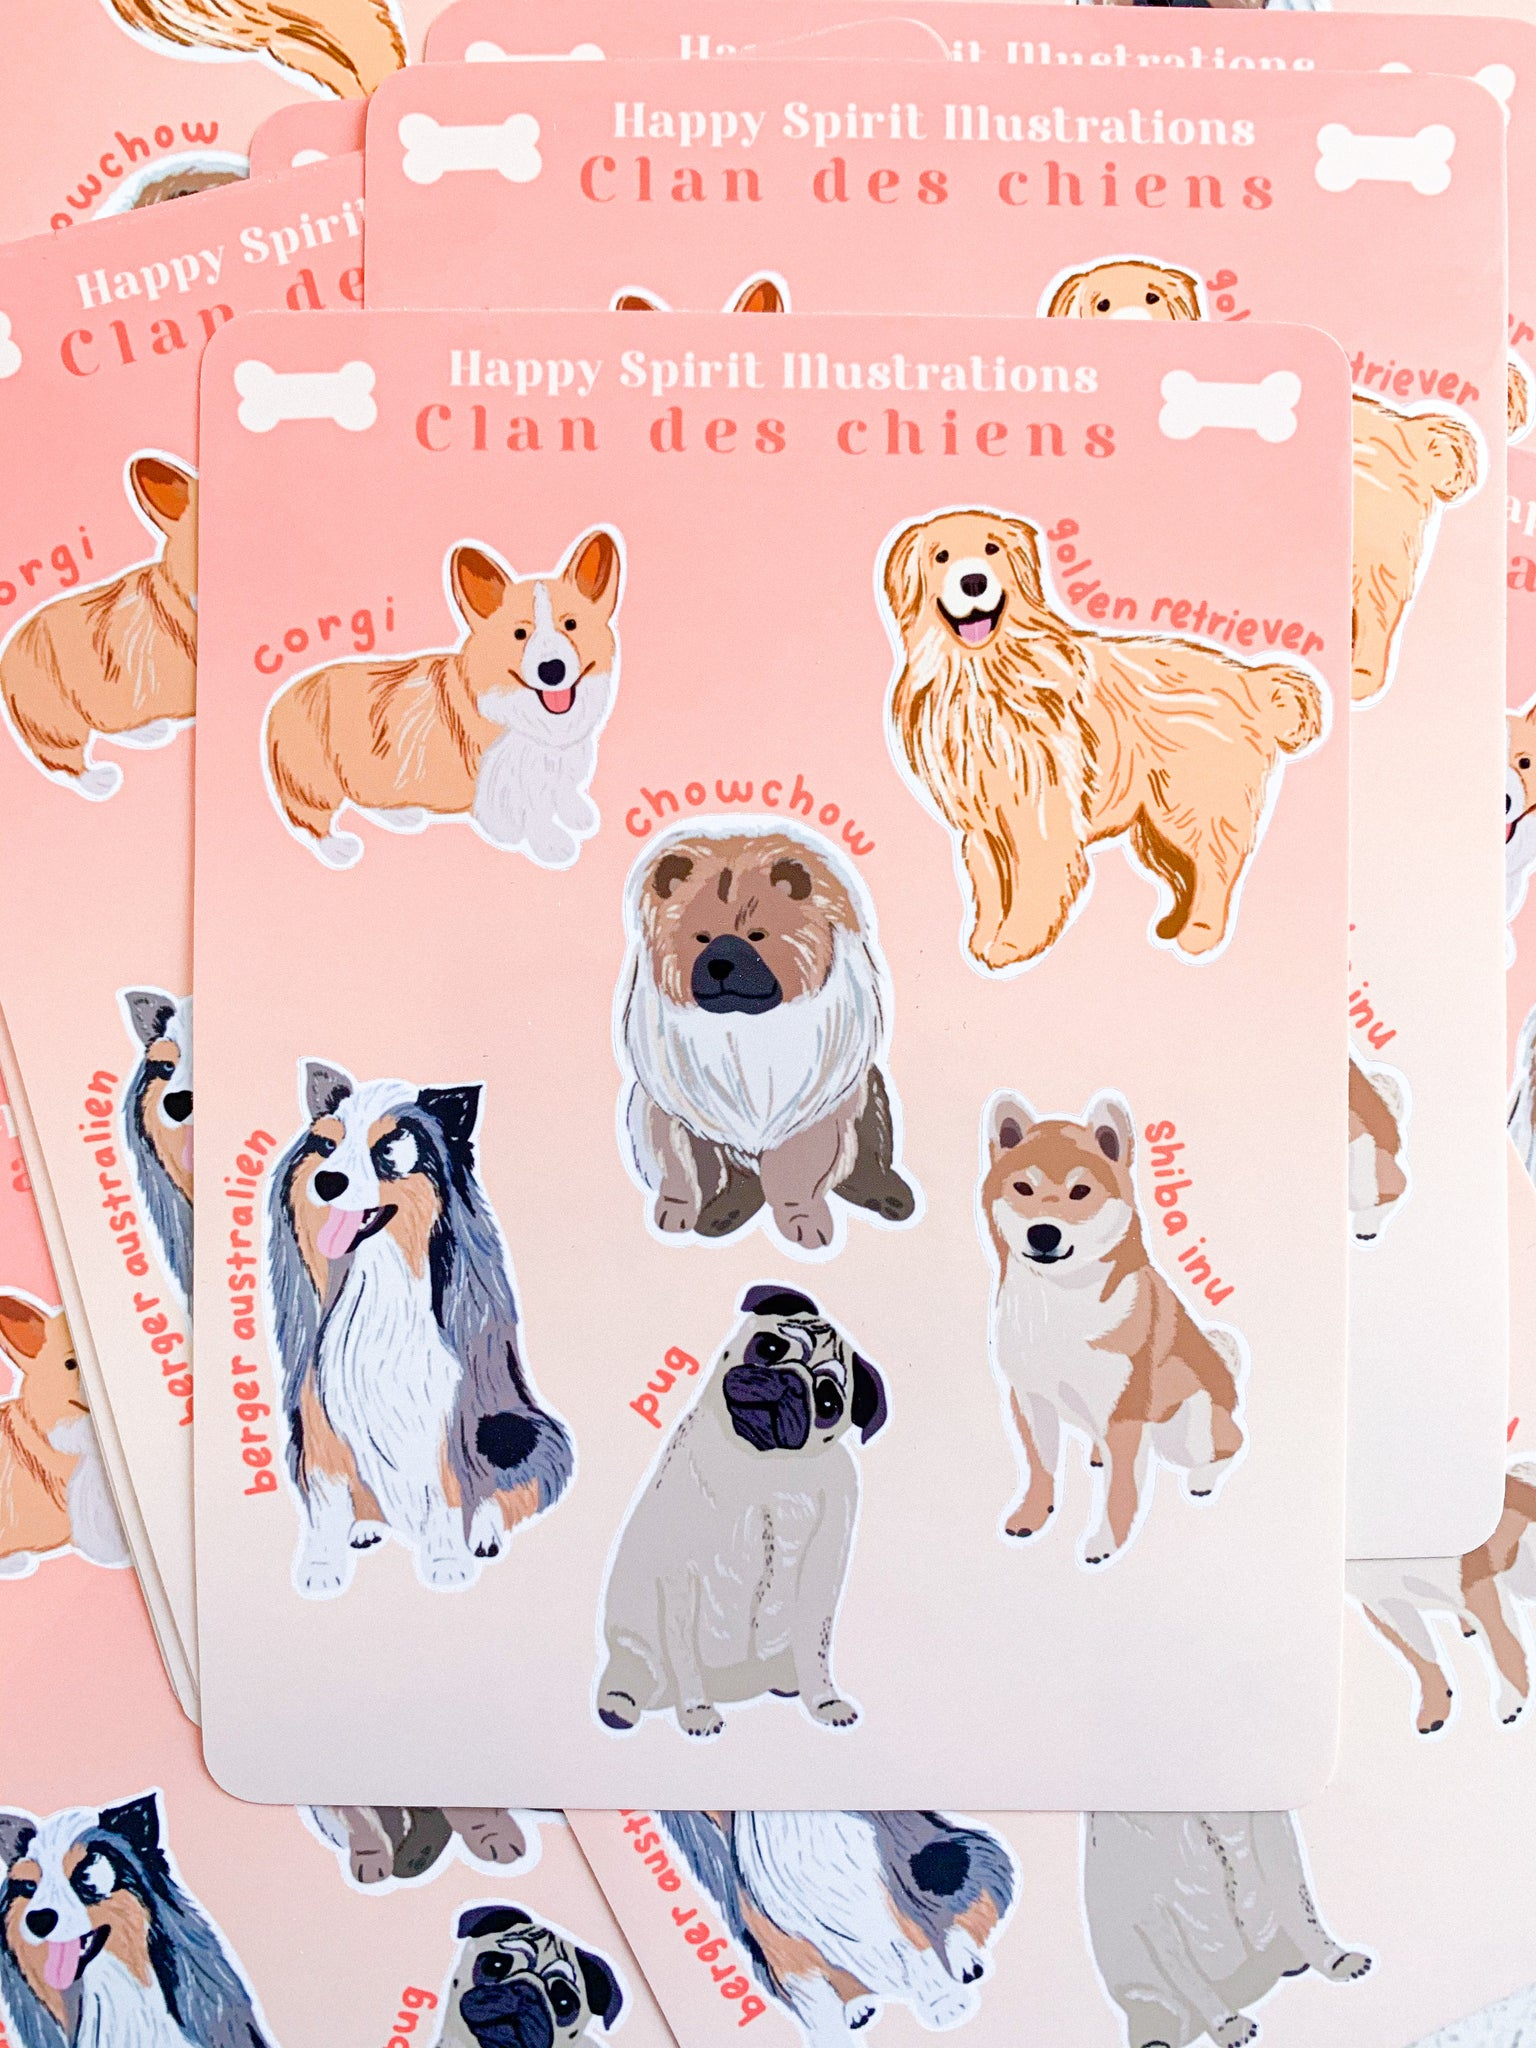 Sticker Sheet ⭑ Clan des chiens